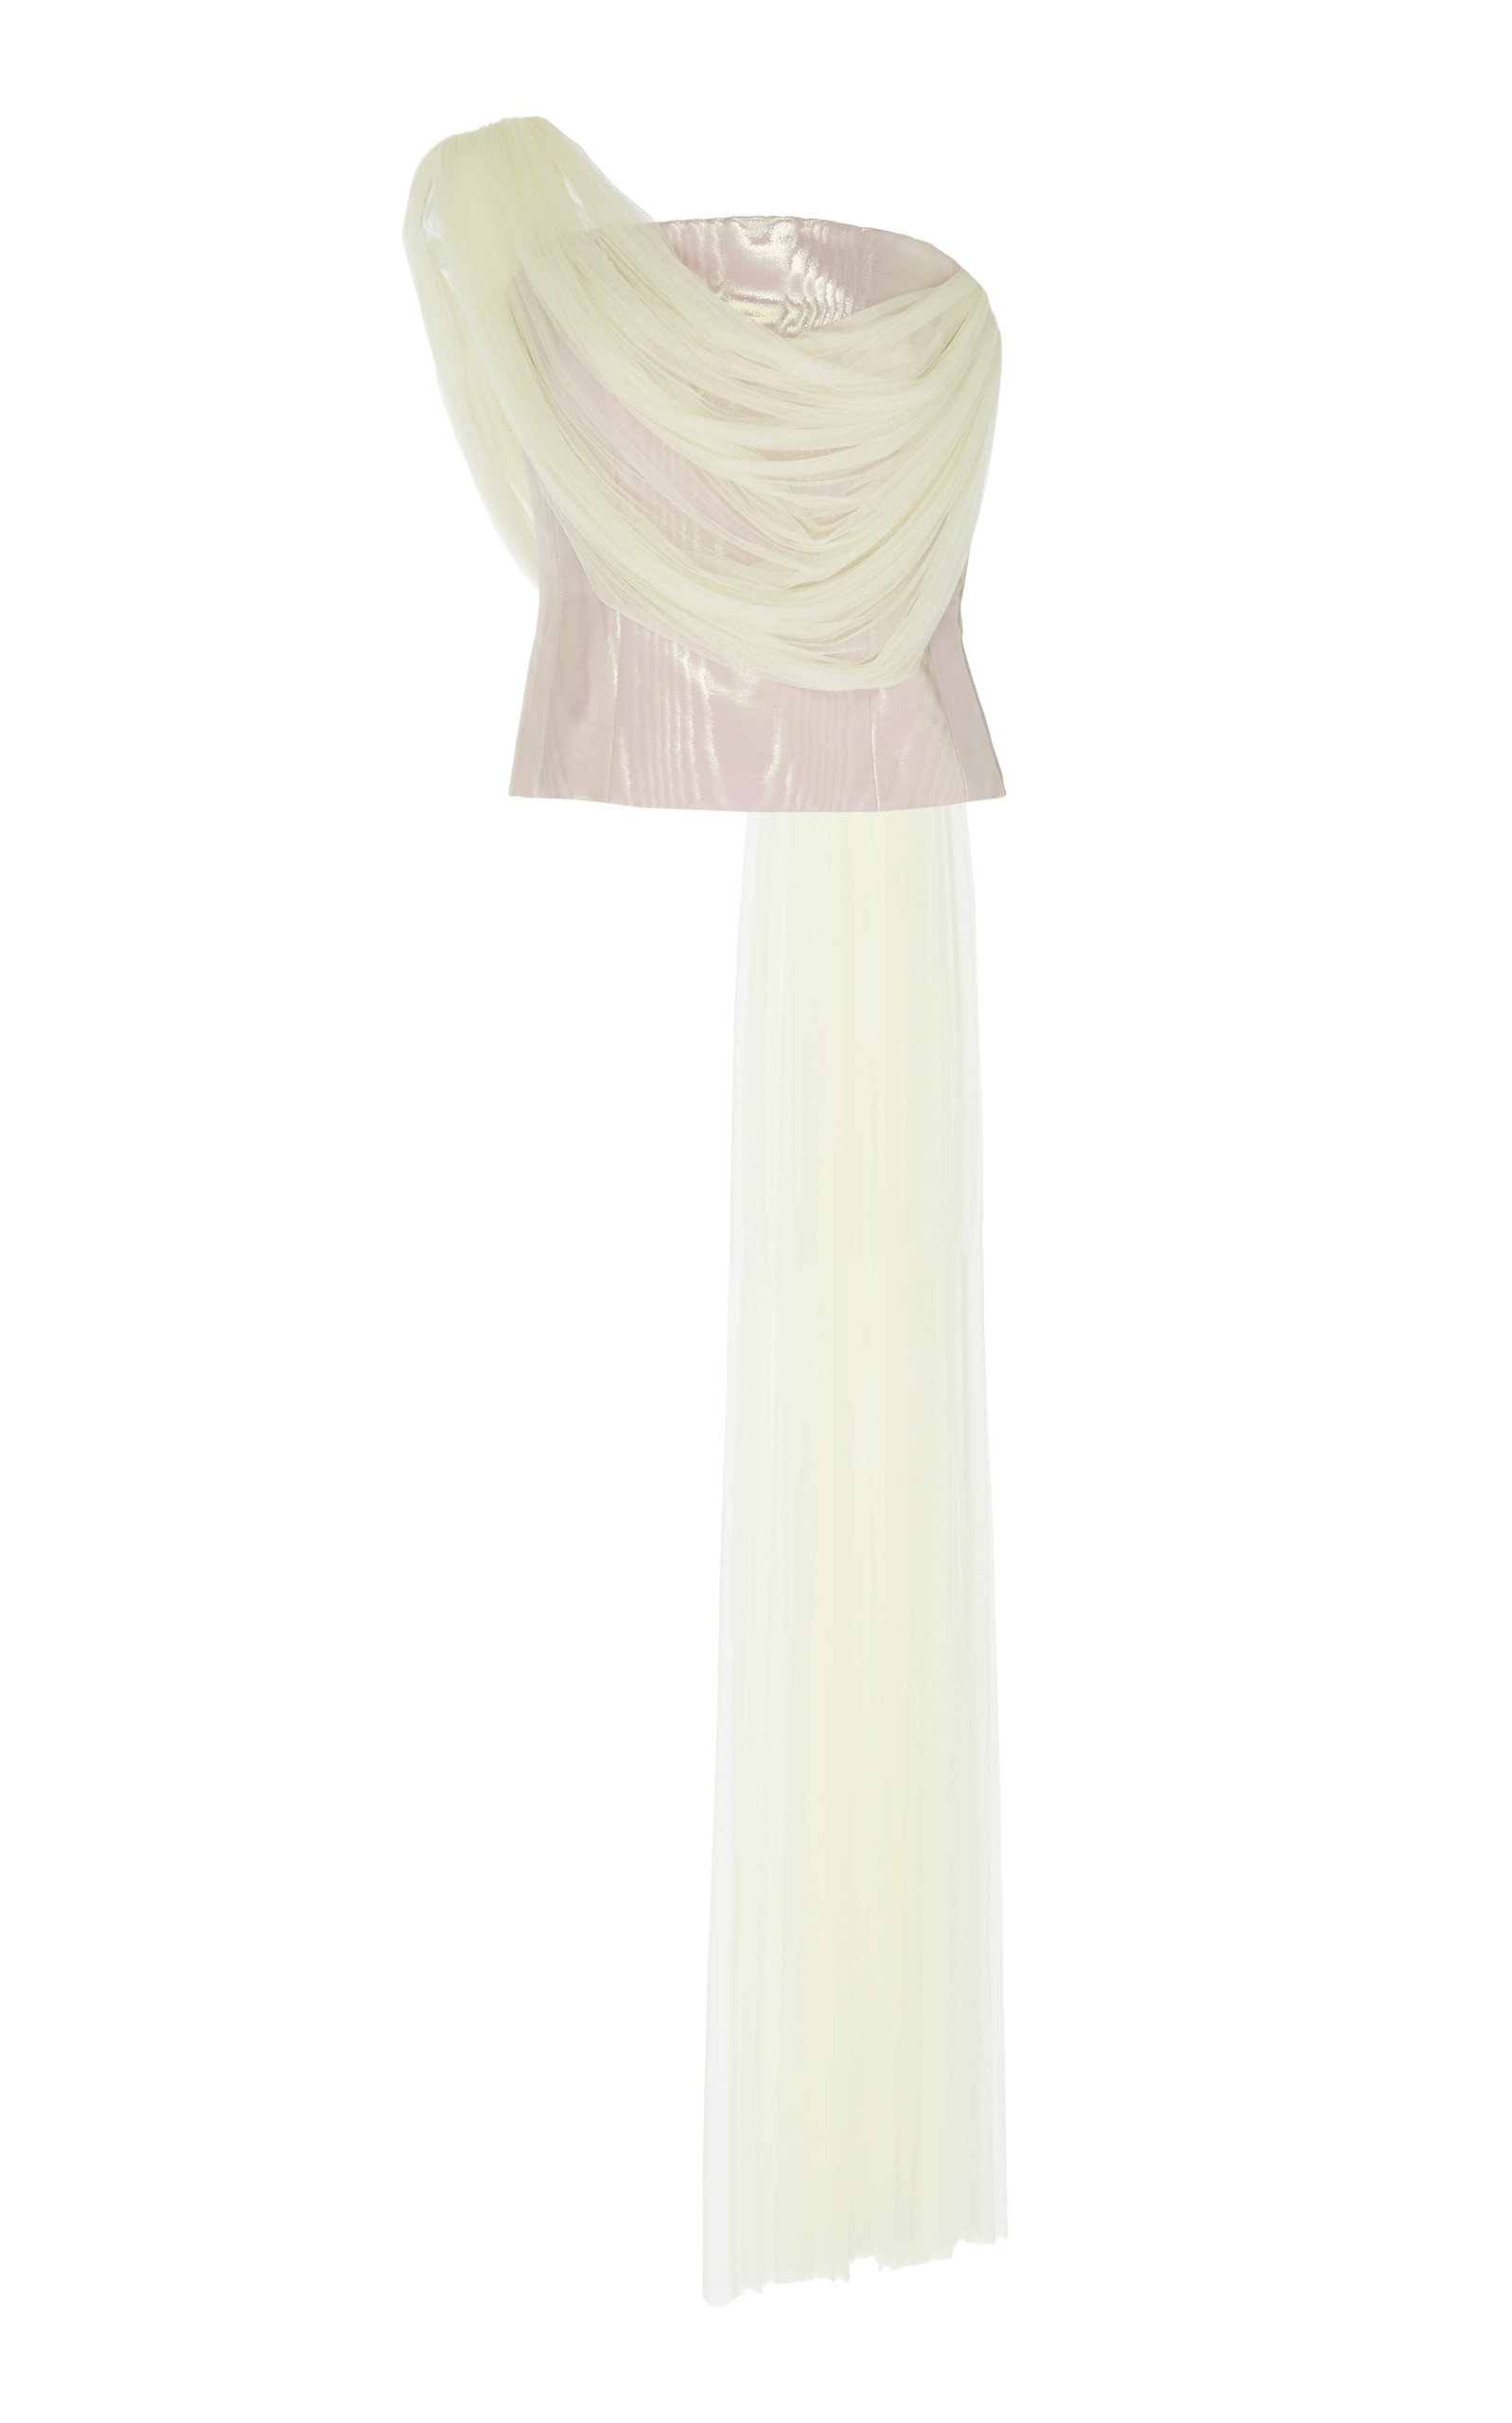 d1fe4f9cbe1 Moiré Corset With Tulle by DELPOZO